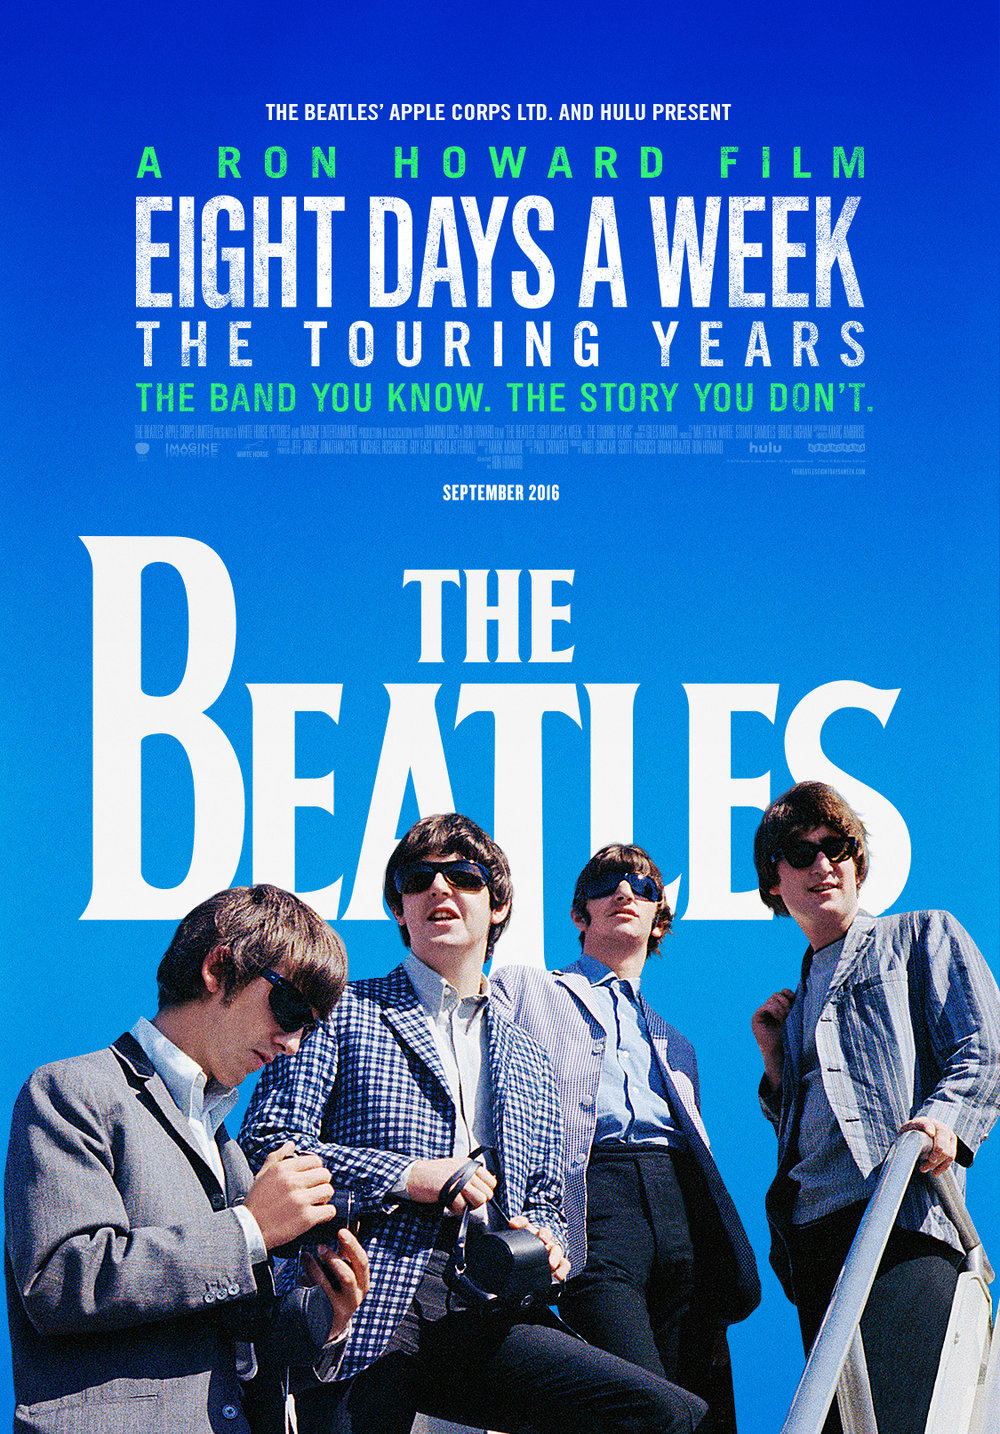 The Beatles - Eight Days A Week - poster.jpg